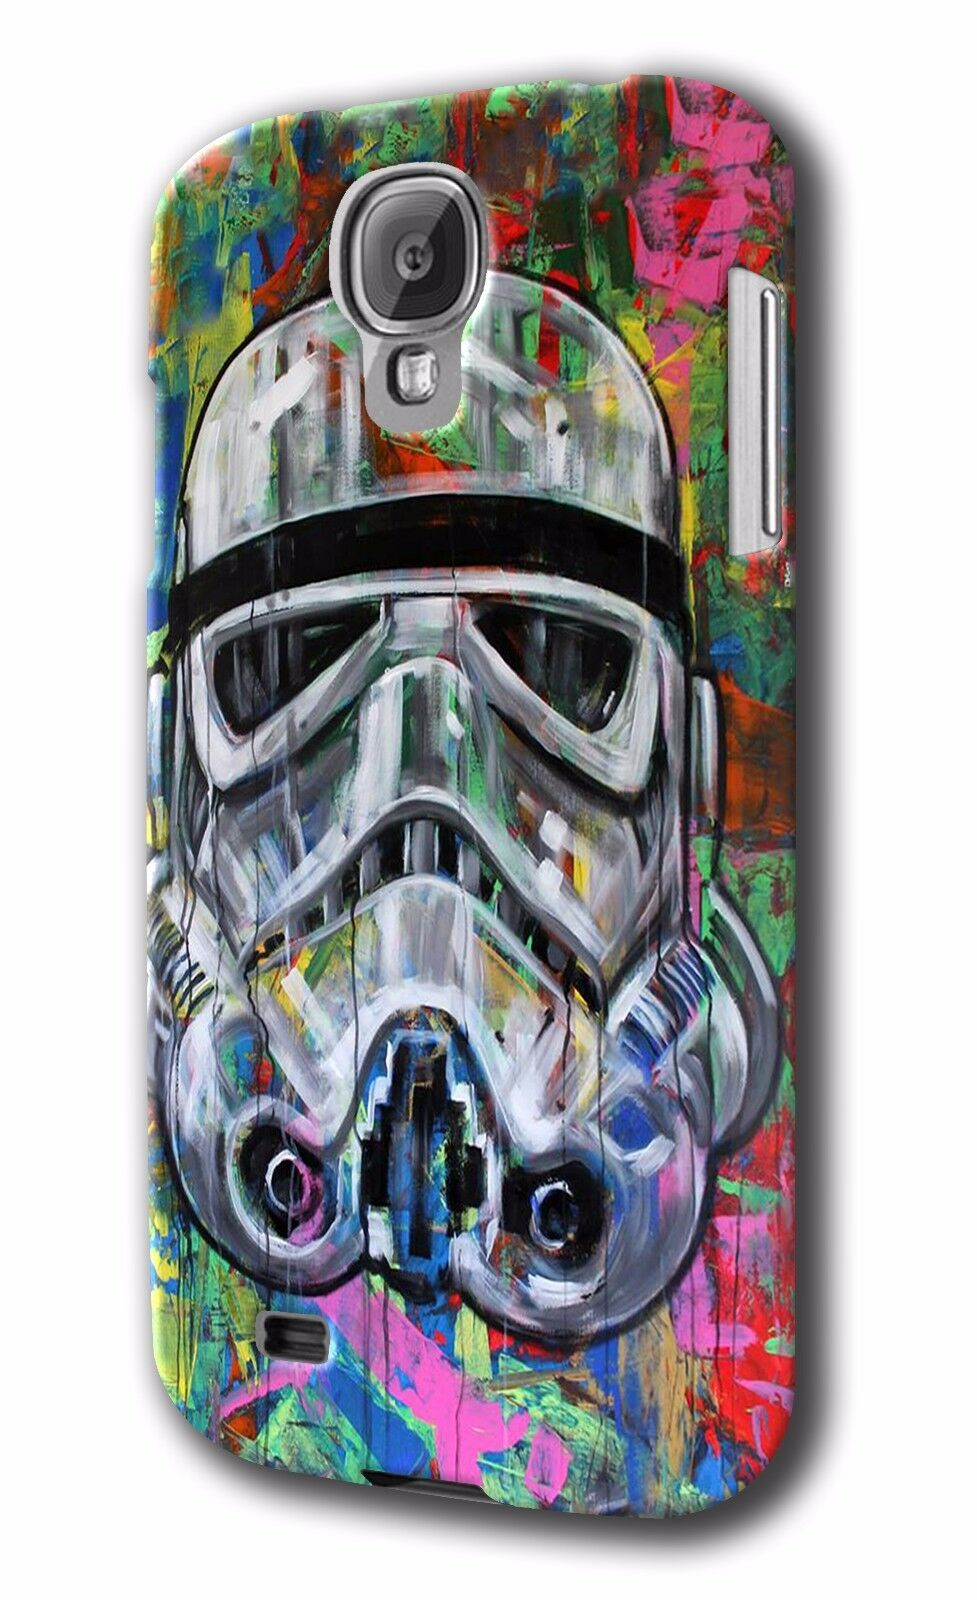 Star Wars Stormtrooper Samsung Galaxy S4 5 6 8 9 10 7 E Edge Note Plus Case